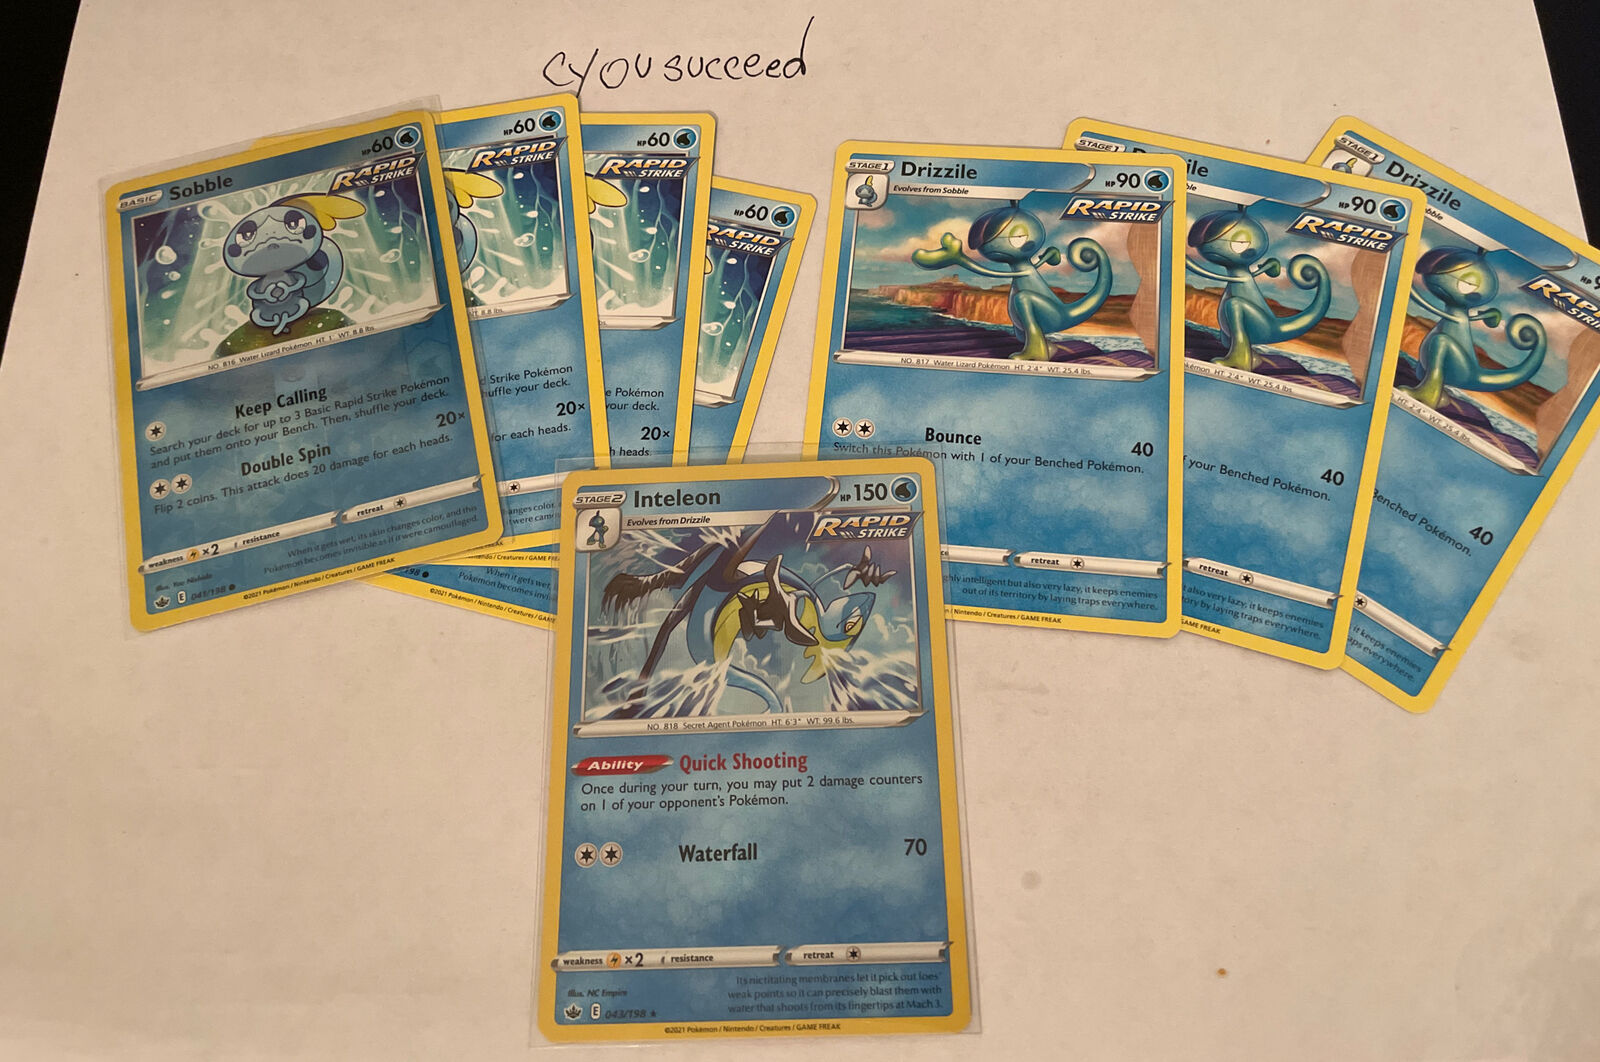 Inteleon 043/198 Holo Rare Chilling Reign Pokemon Card NM/M With Play Set sobble